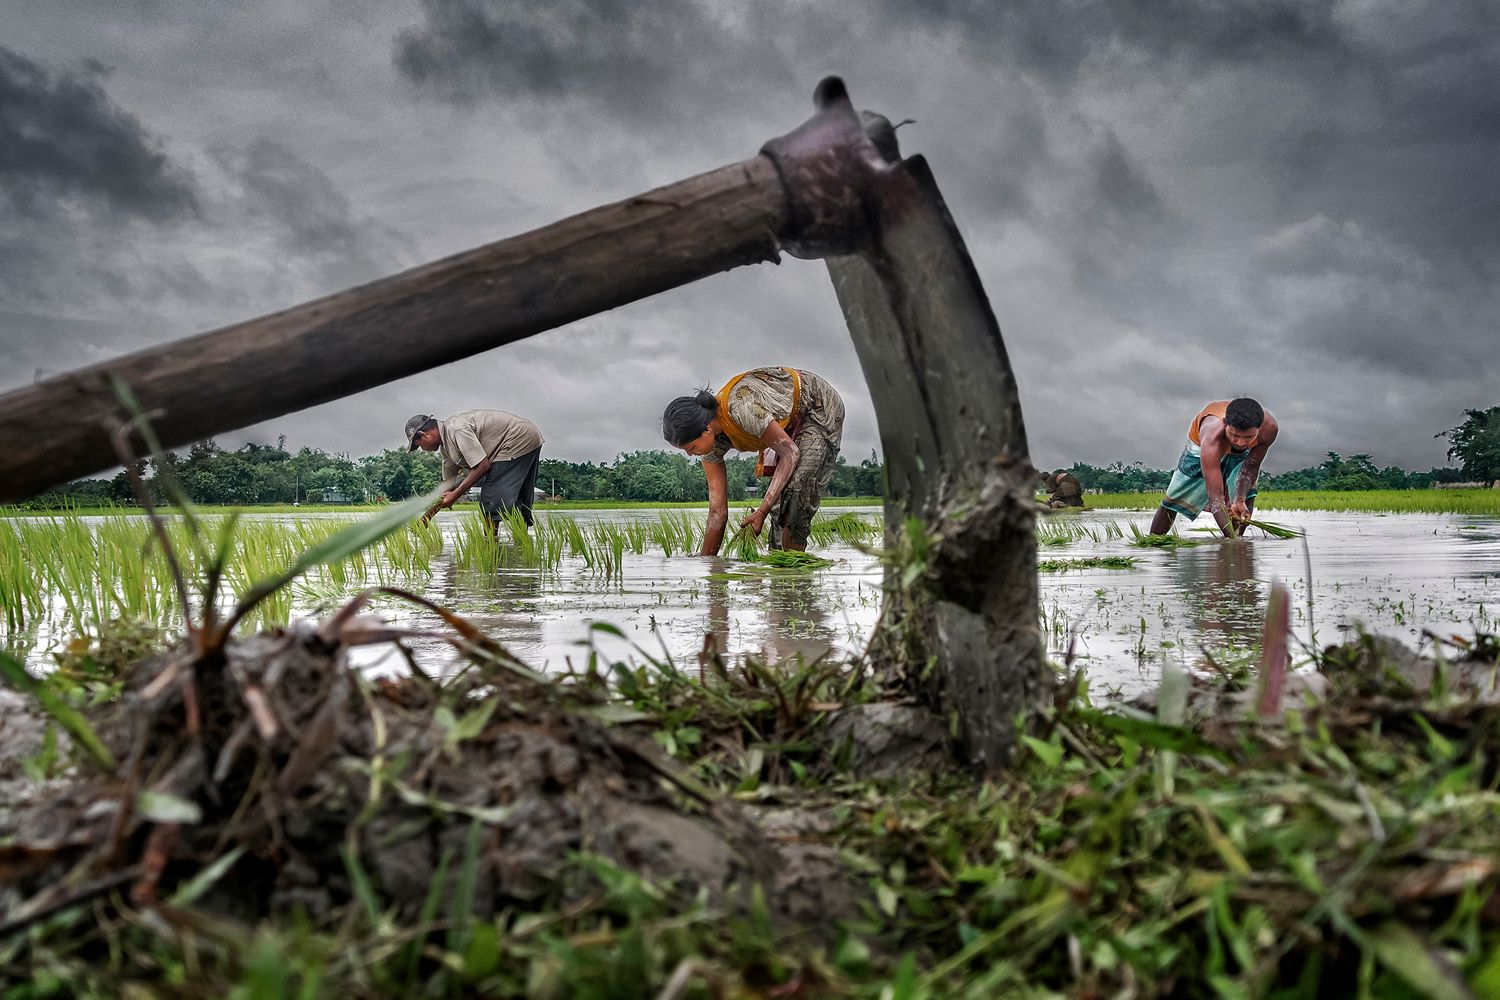 <em>Grand Prize</em>: A family farms their paddy field during monsoon season in Chilkirhaat, Cooch Behar, West Bengal, India. Rice is the staple food of the state, and paddy cultivation plays a major role. Men, women and even children take part.